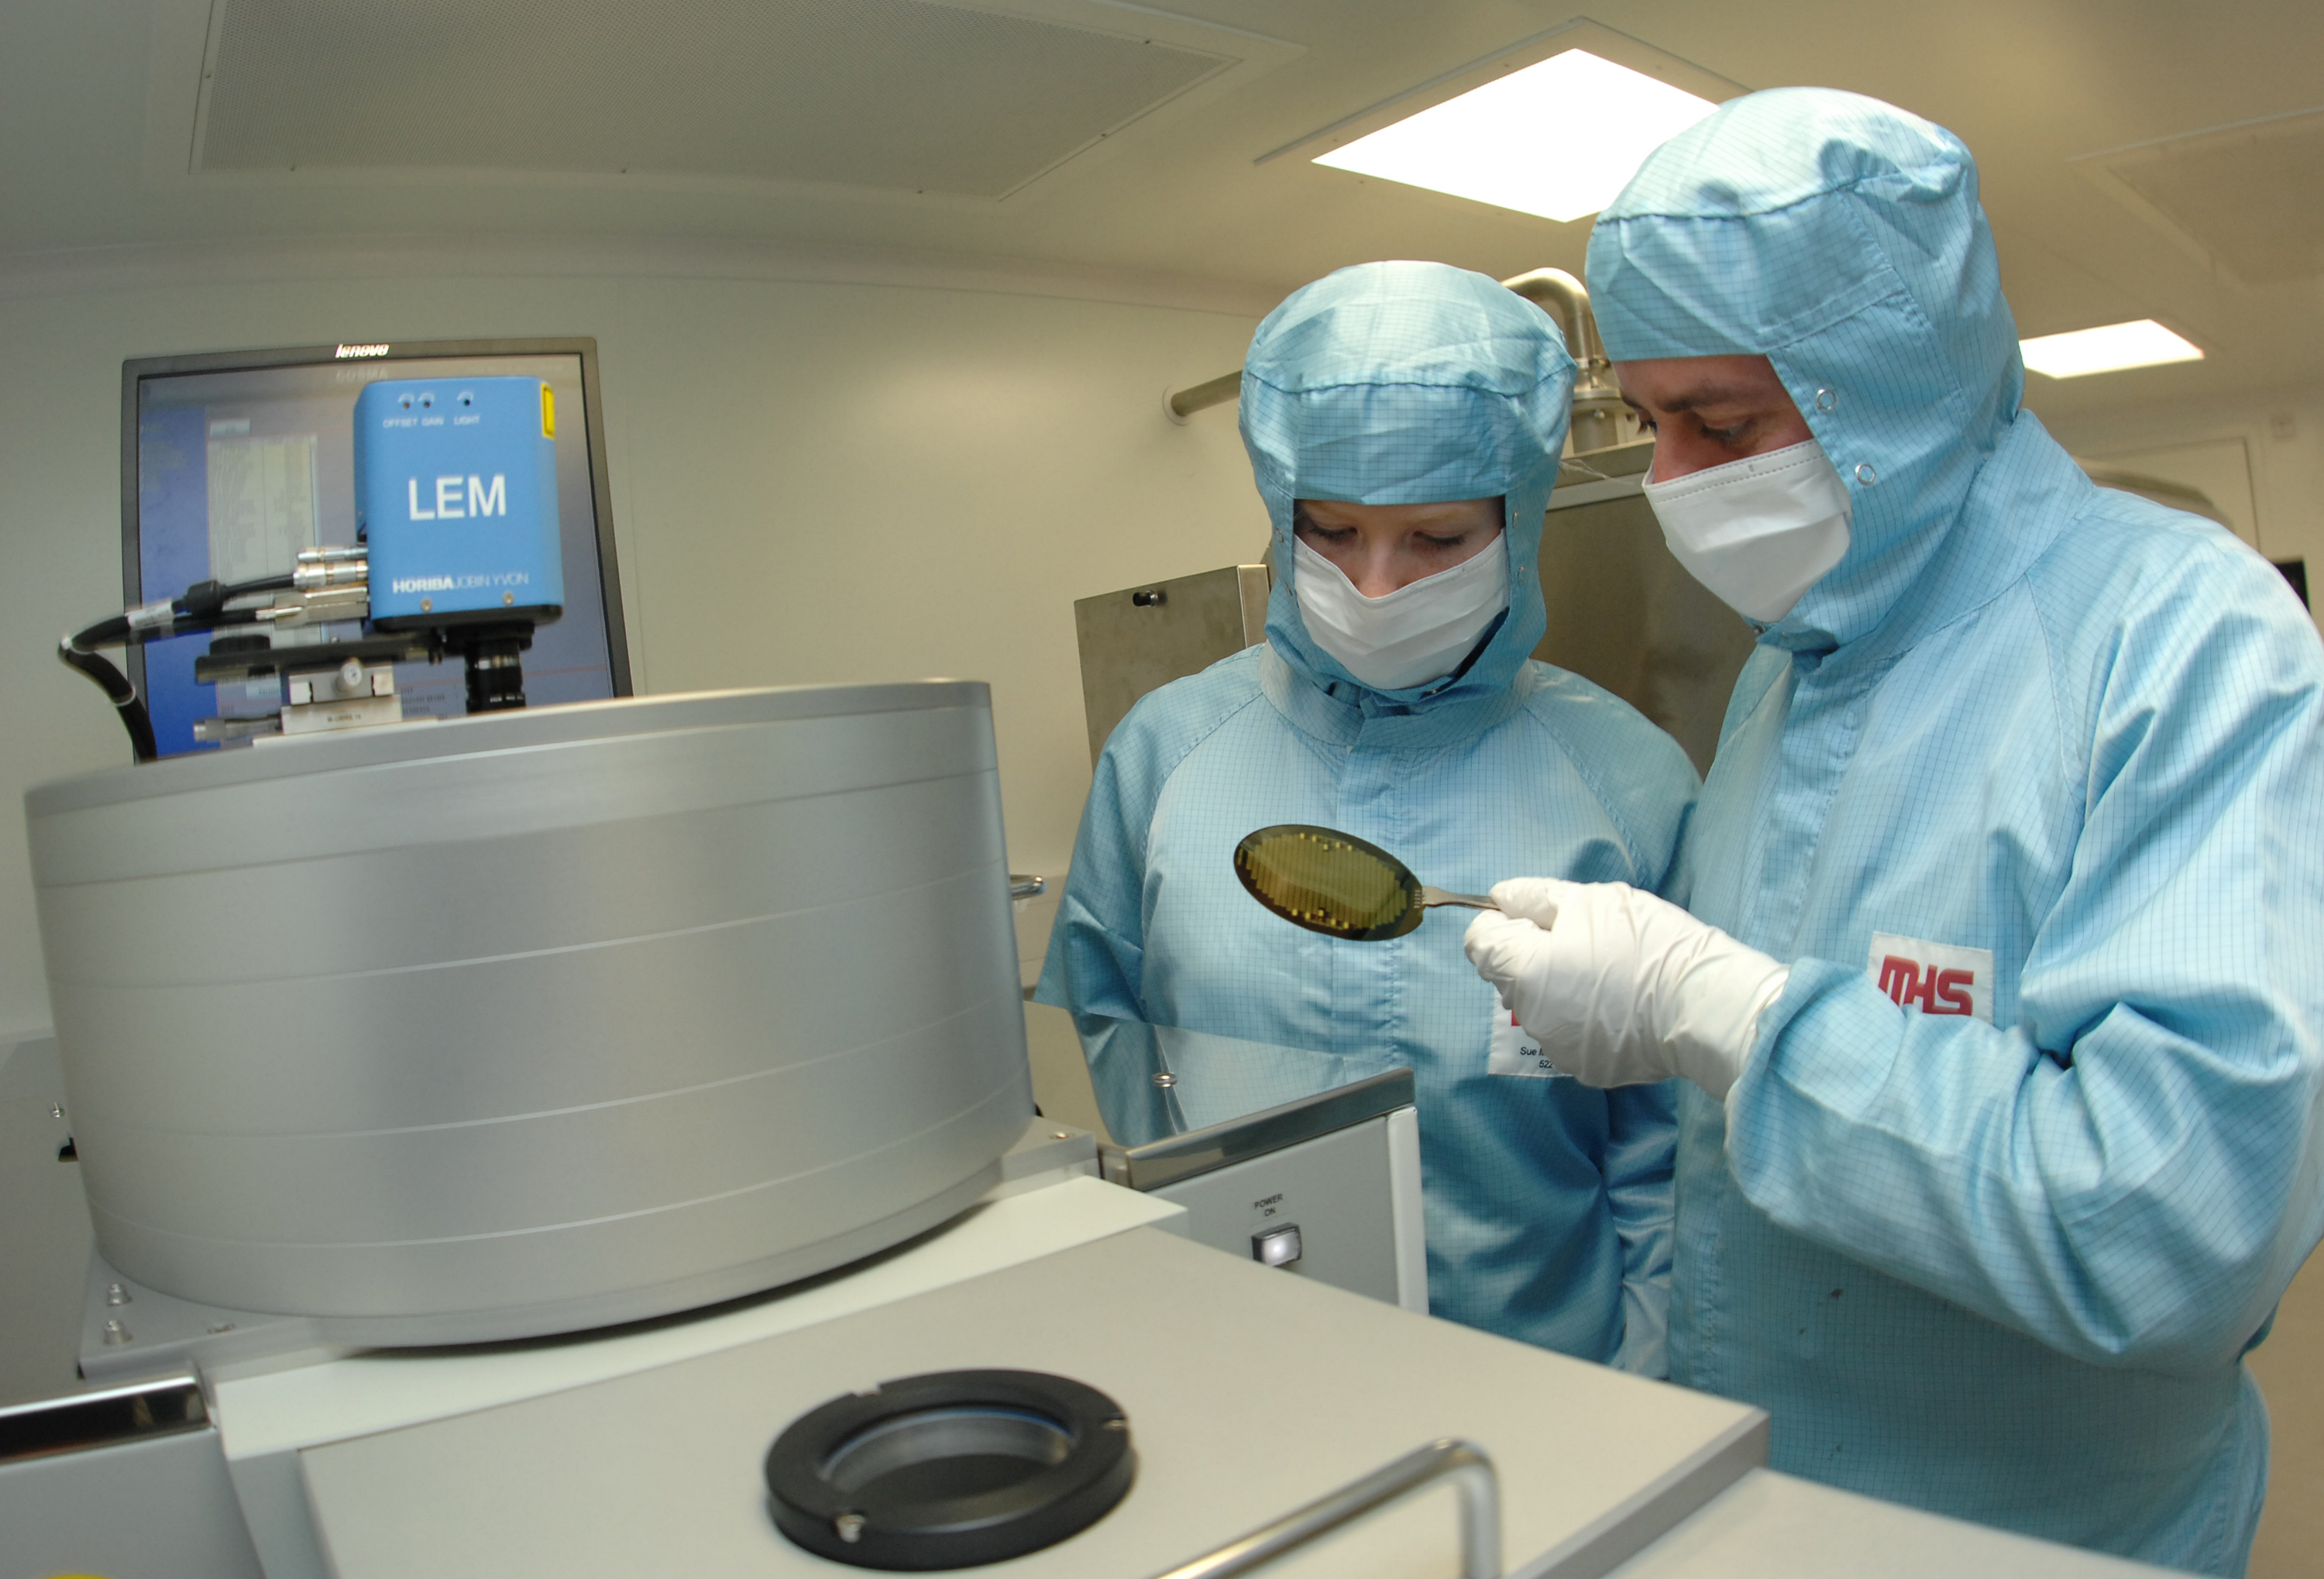 Clean Room: High Tech Cleanroom Opening Marks £10 Million Investment